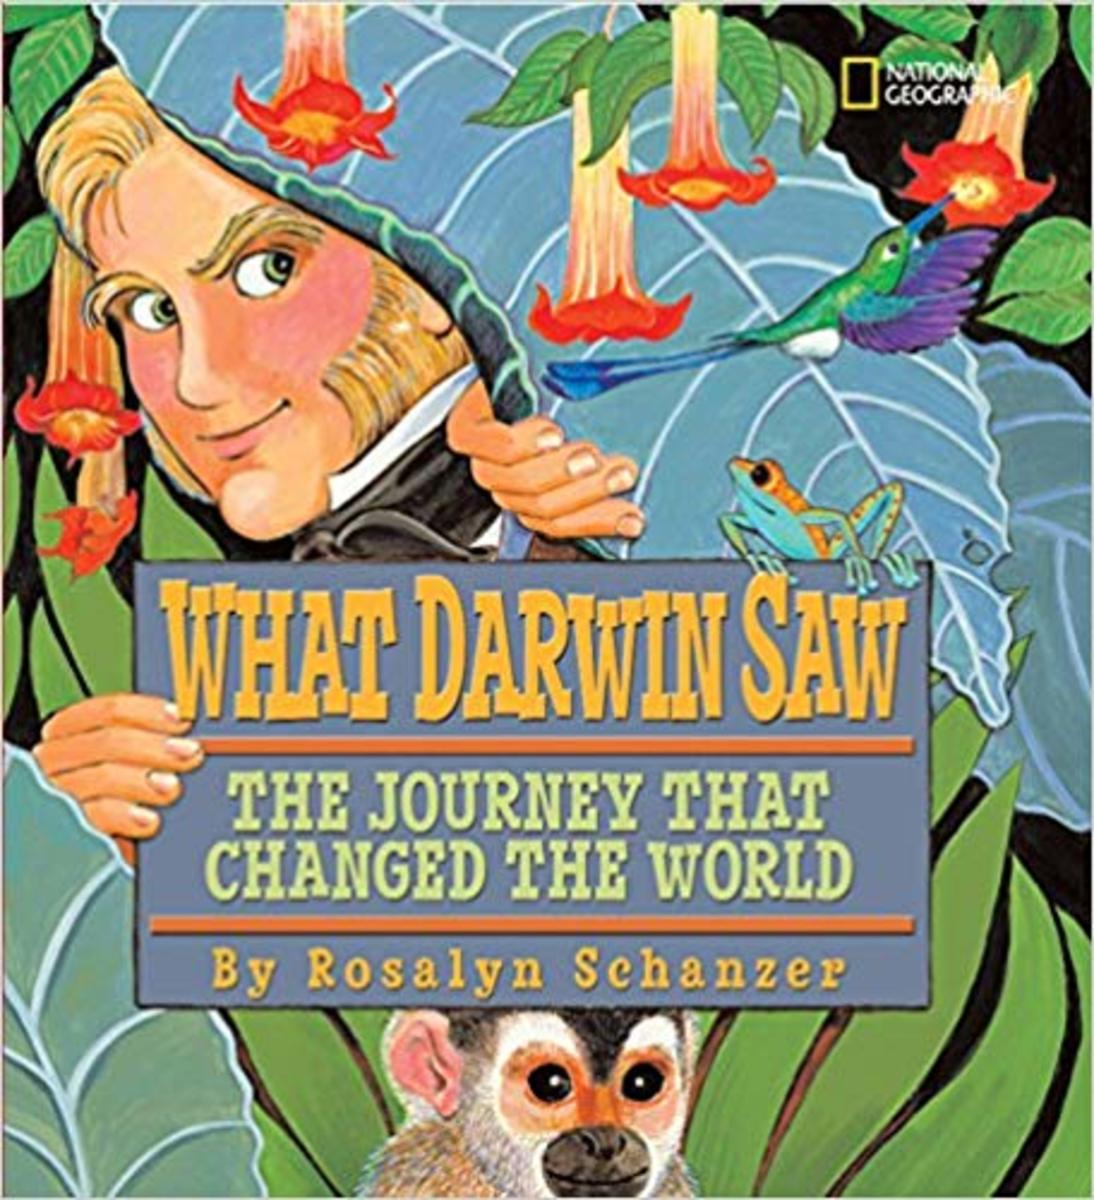 What Darwin Saw: The Journey That Changed the World by Rosalyn Schanzer